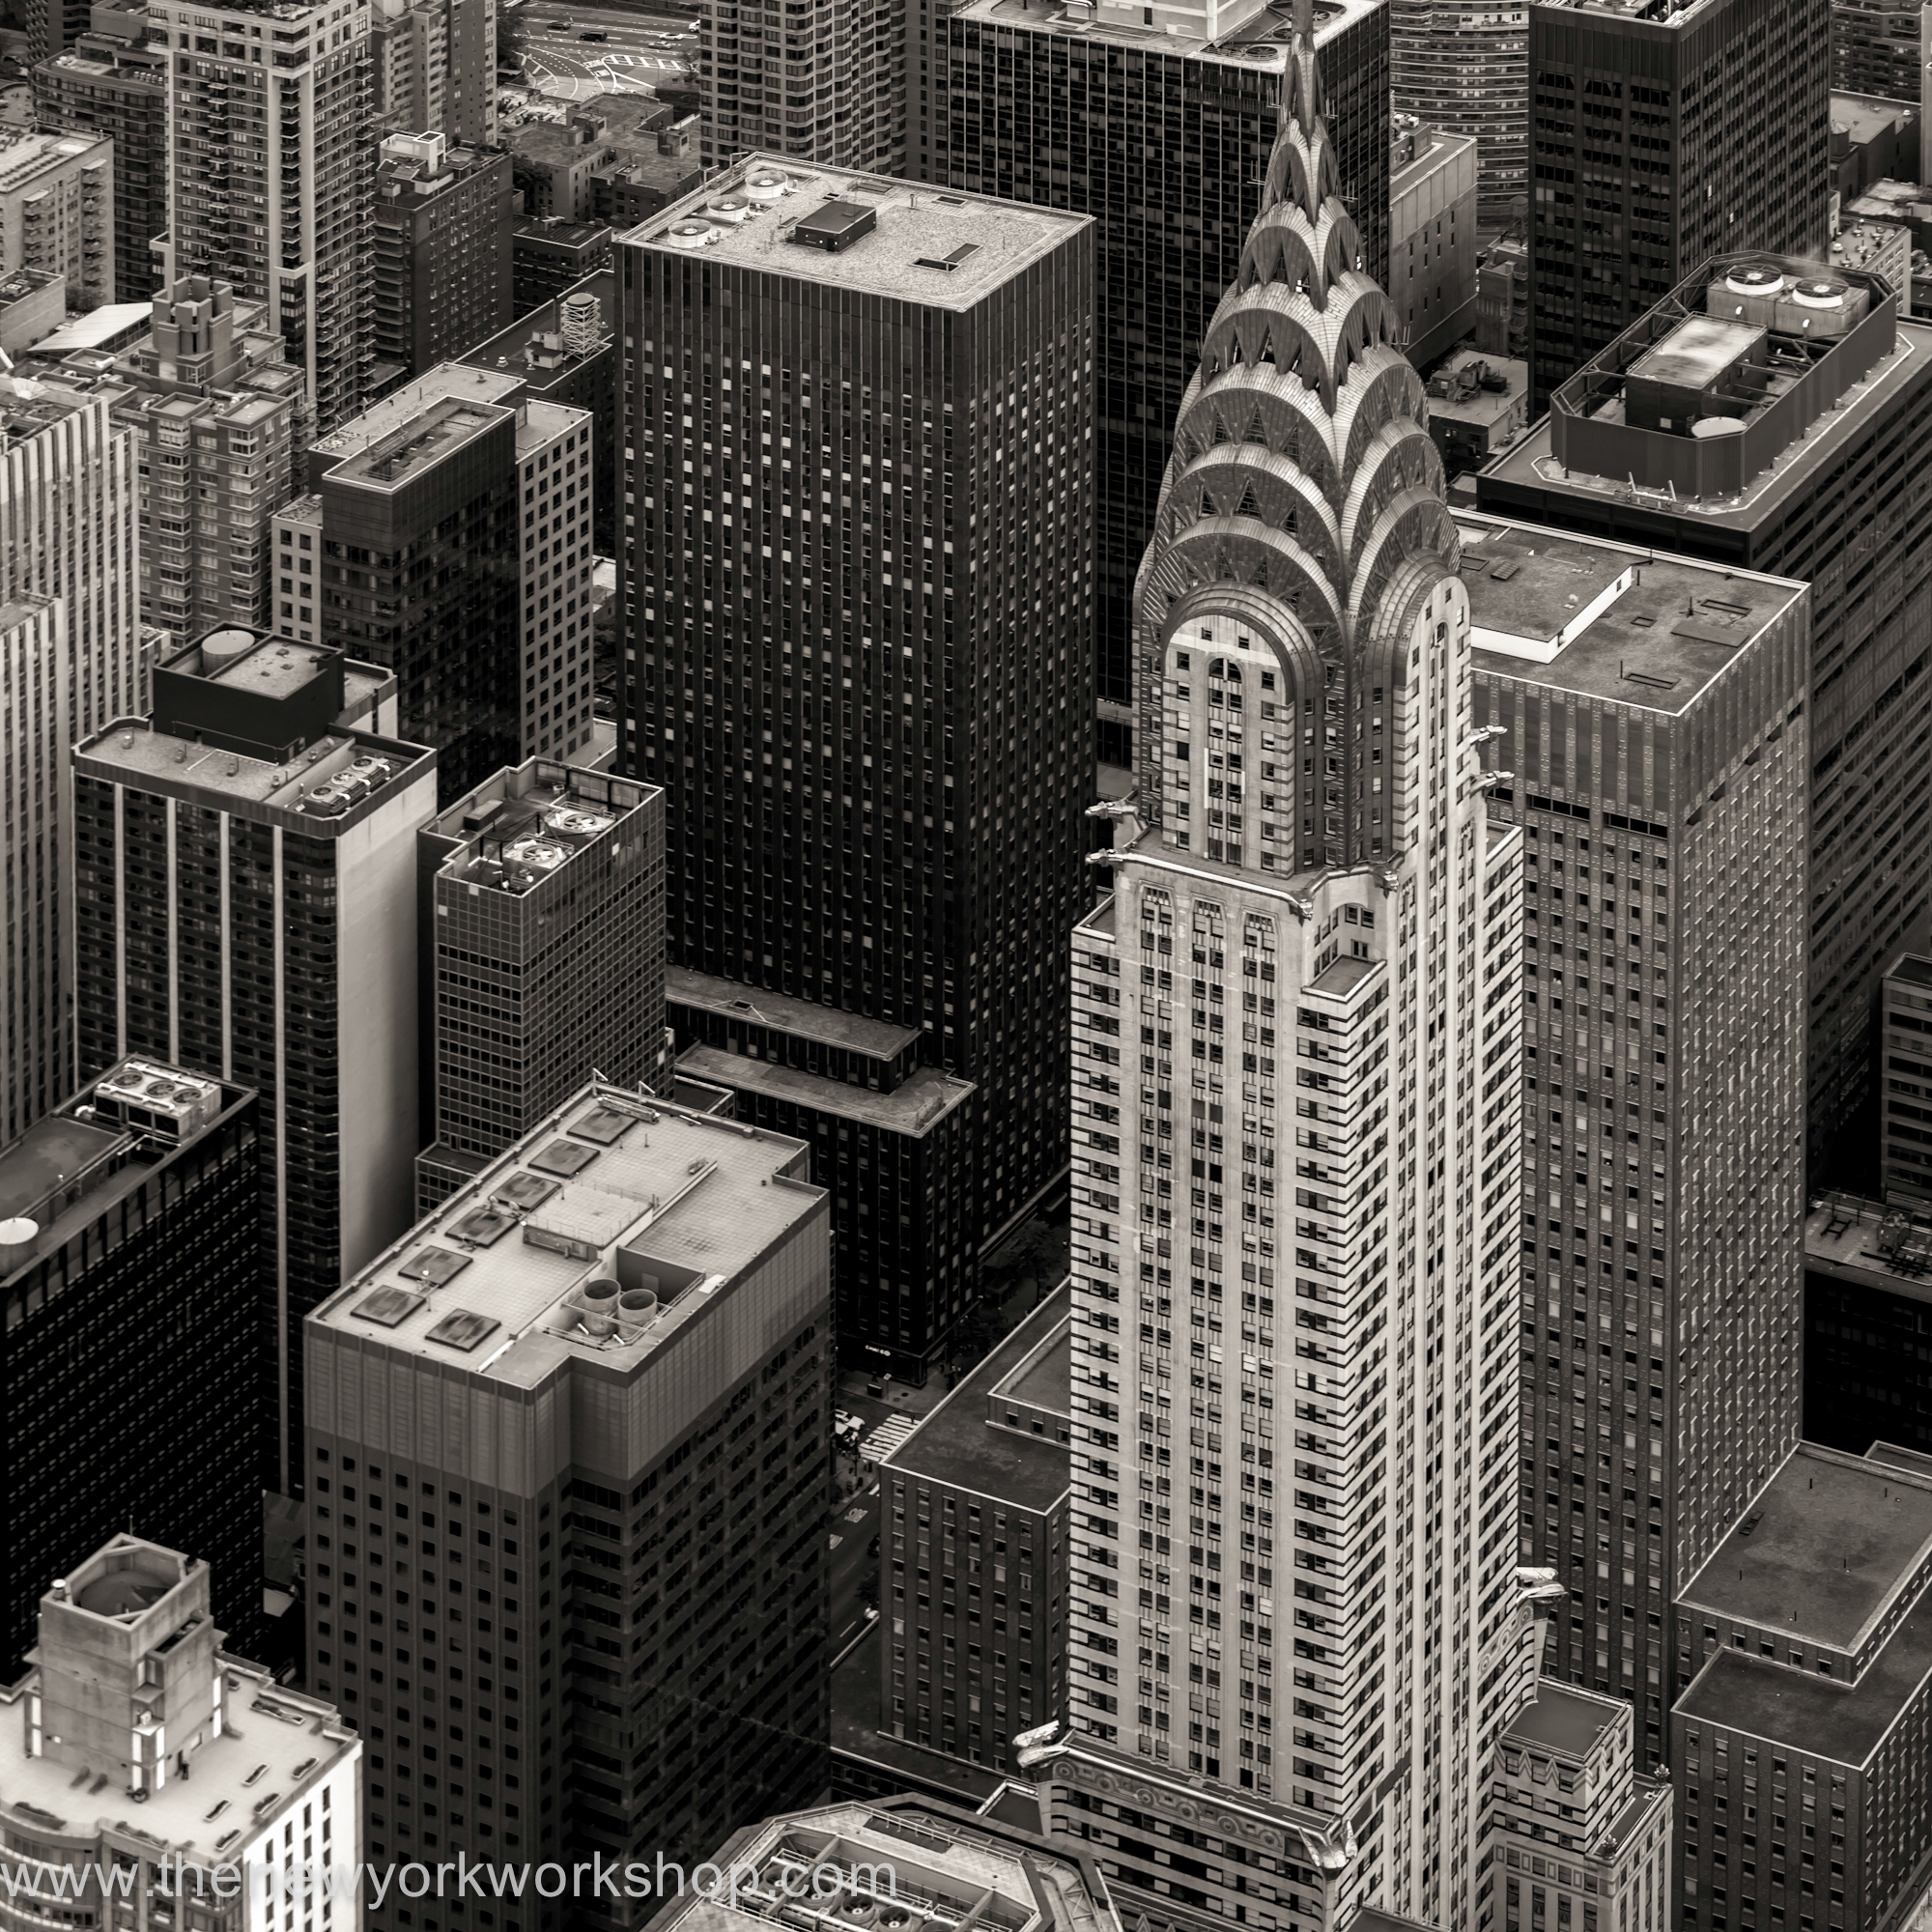 A view from helicopter with the Chrysler building